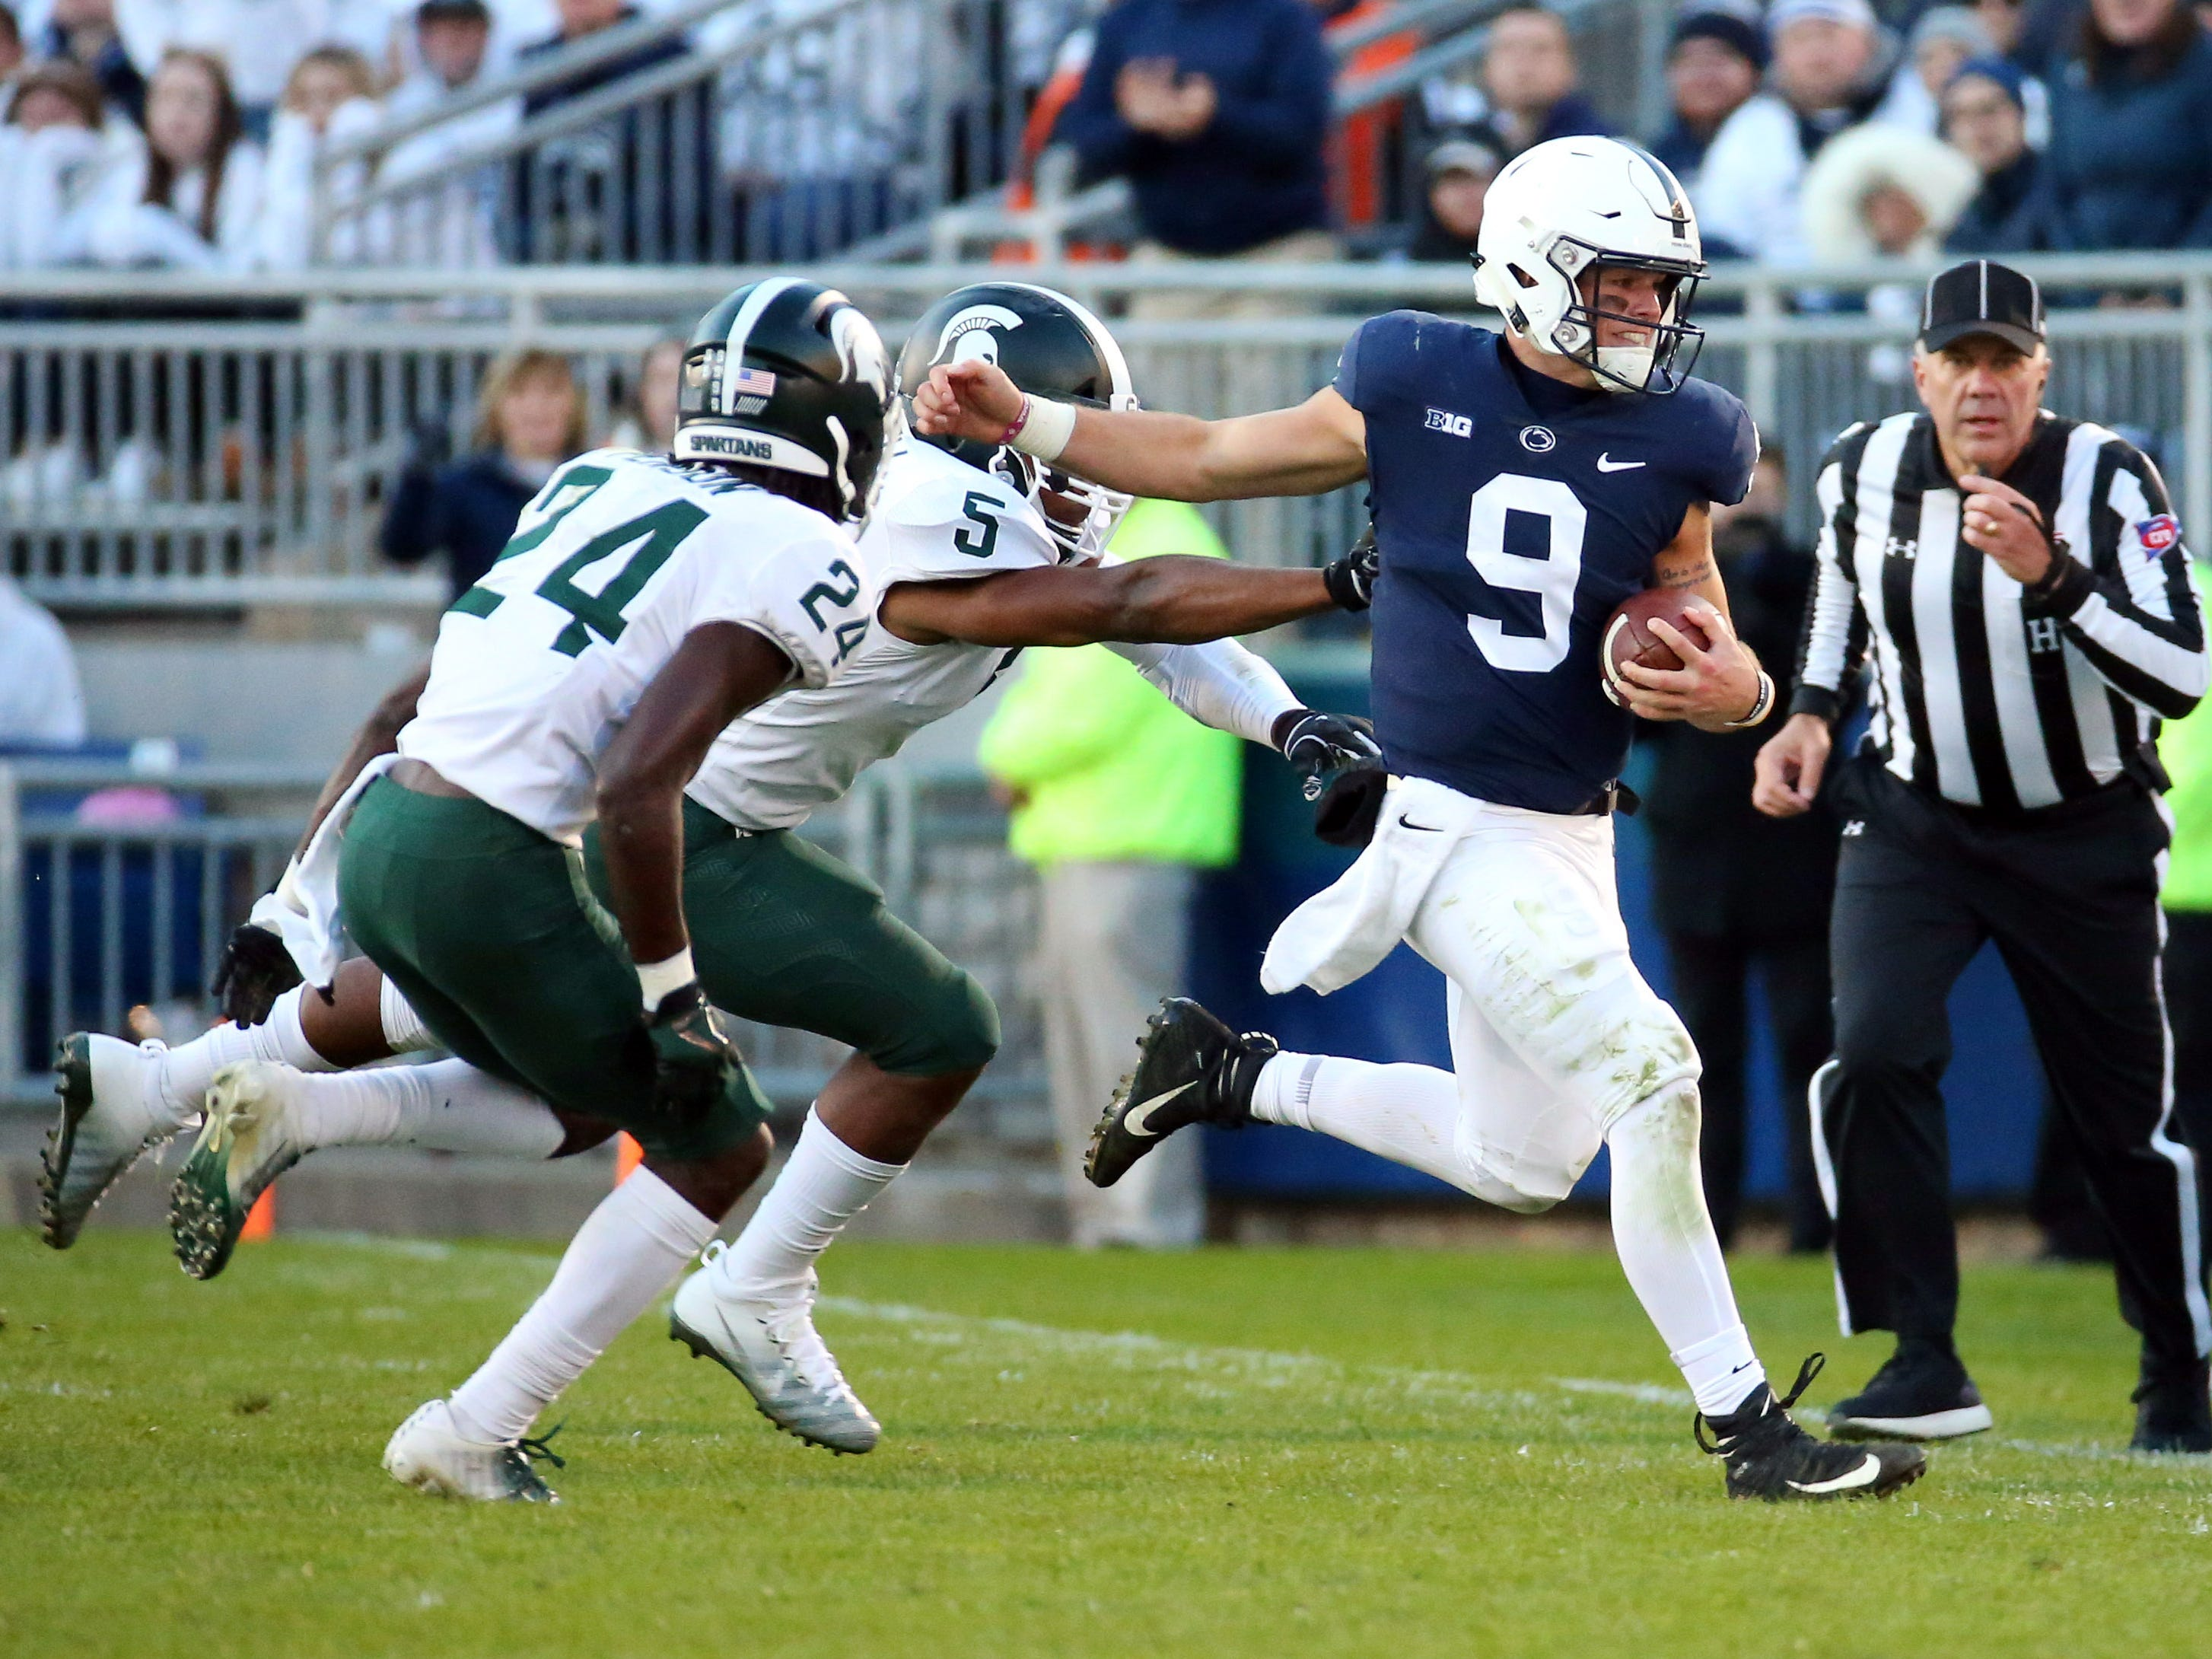 Penn State Nittany Lions quarterback Trace McSorley (9) runs with the ball past Michigan State Spartans safety Tre Person (24) and linebacker Andrew Dowell (5) during the third quarter at Beaver Stadium.